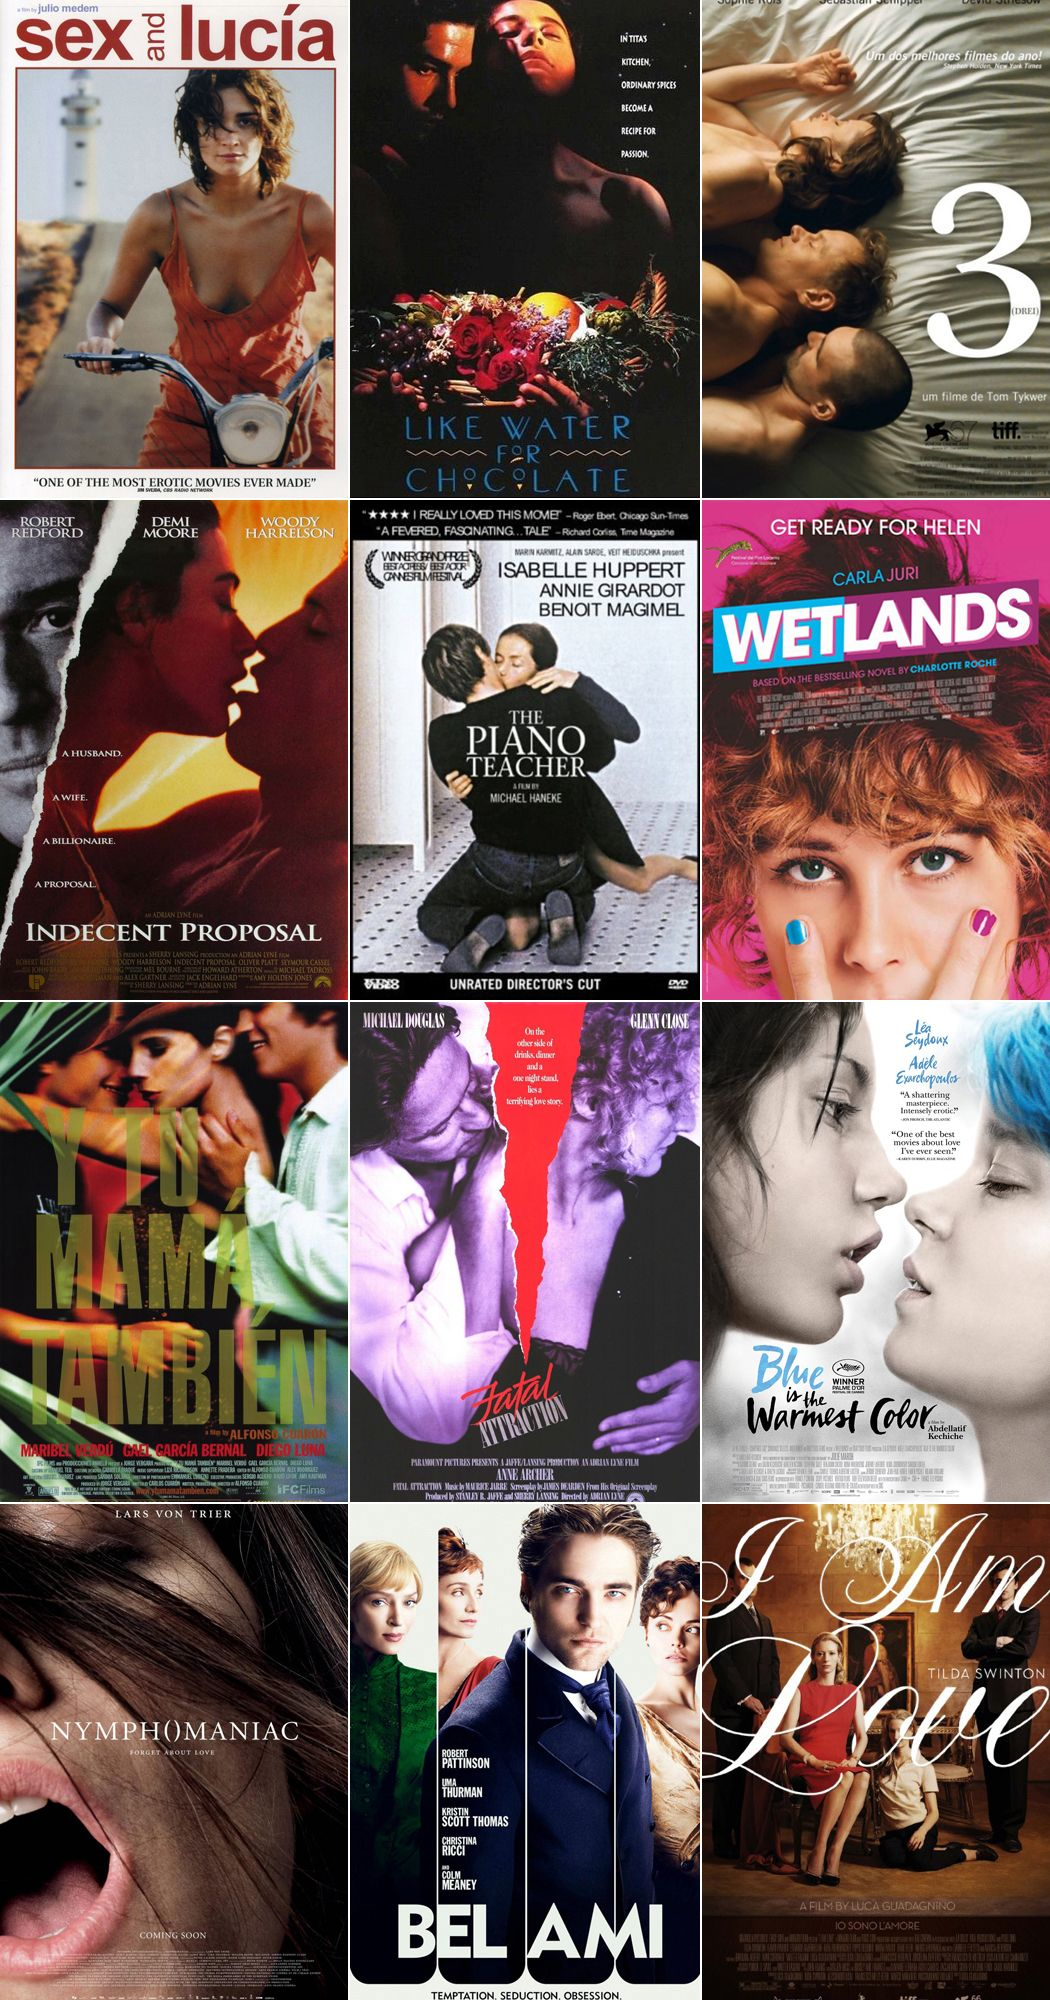 netflix movies with porn Feb 2015  The feature-length film describes itself as the